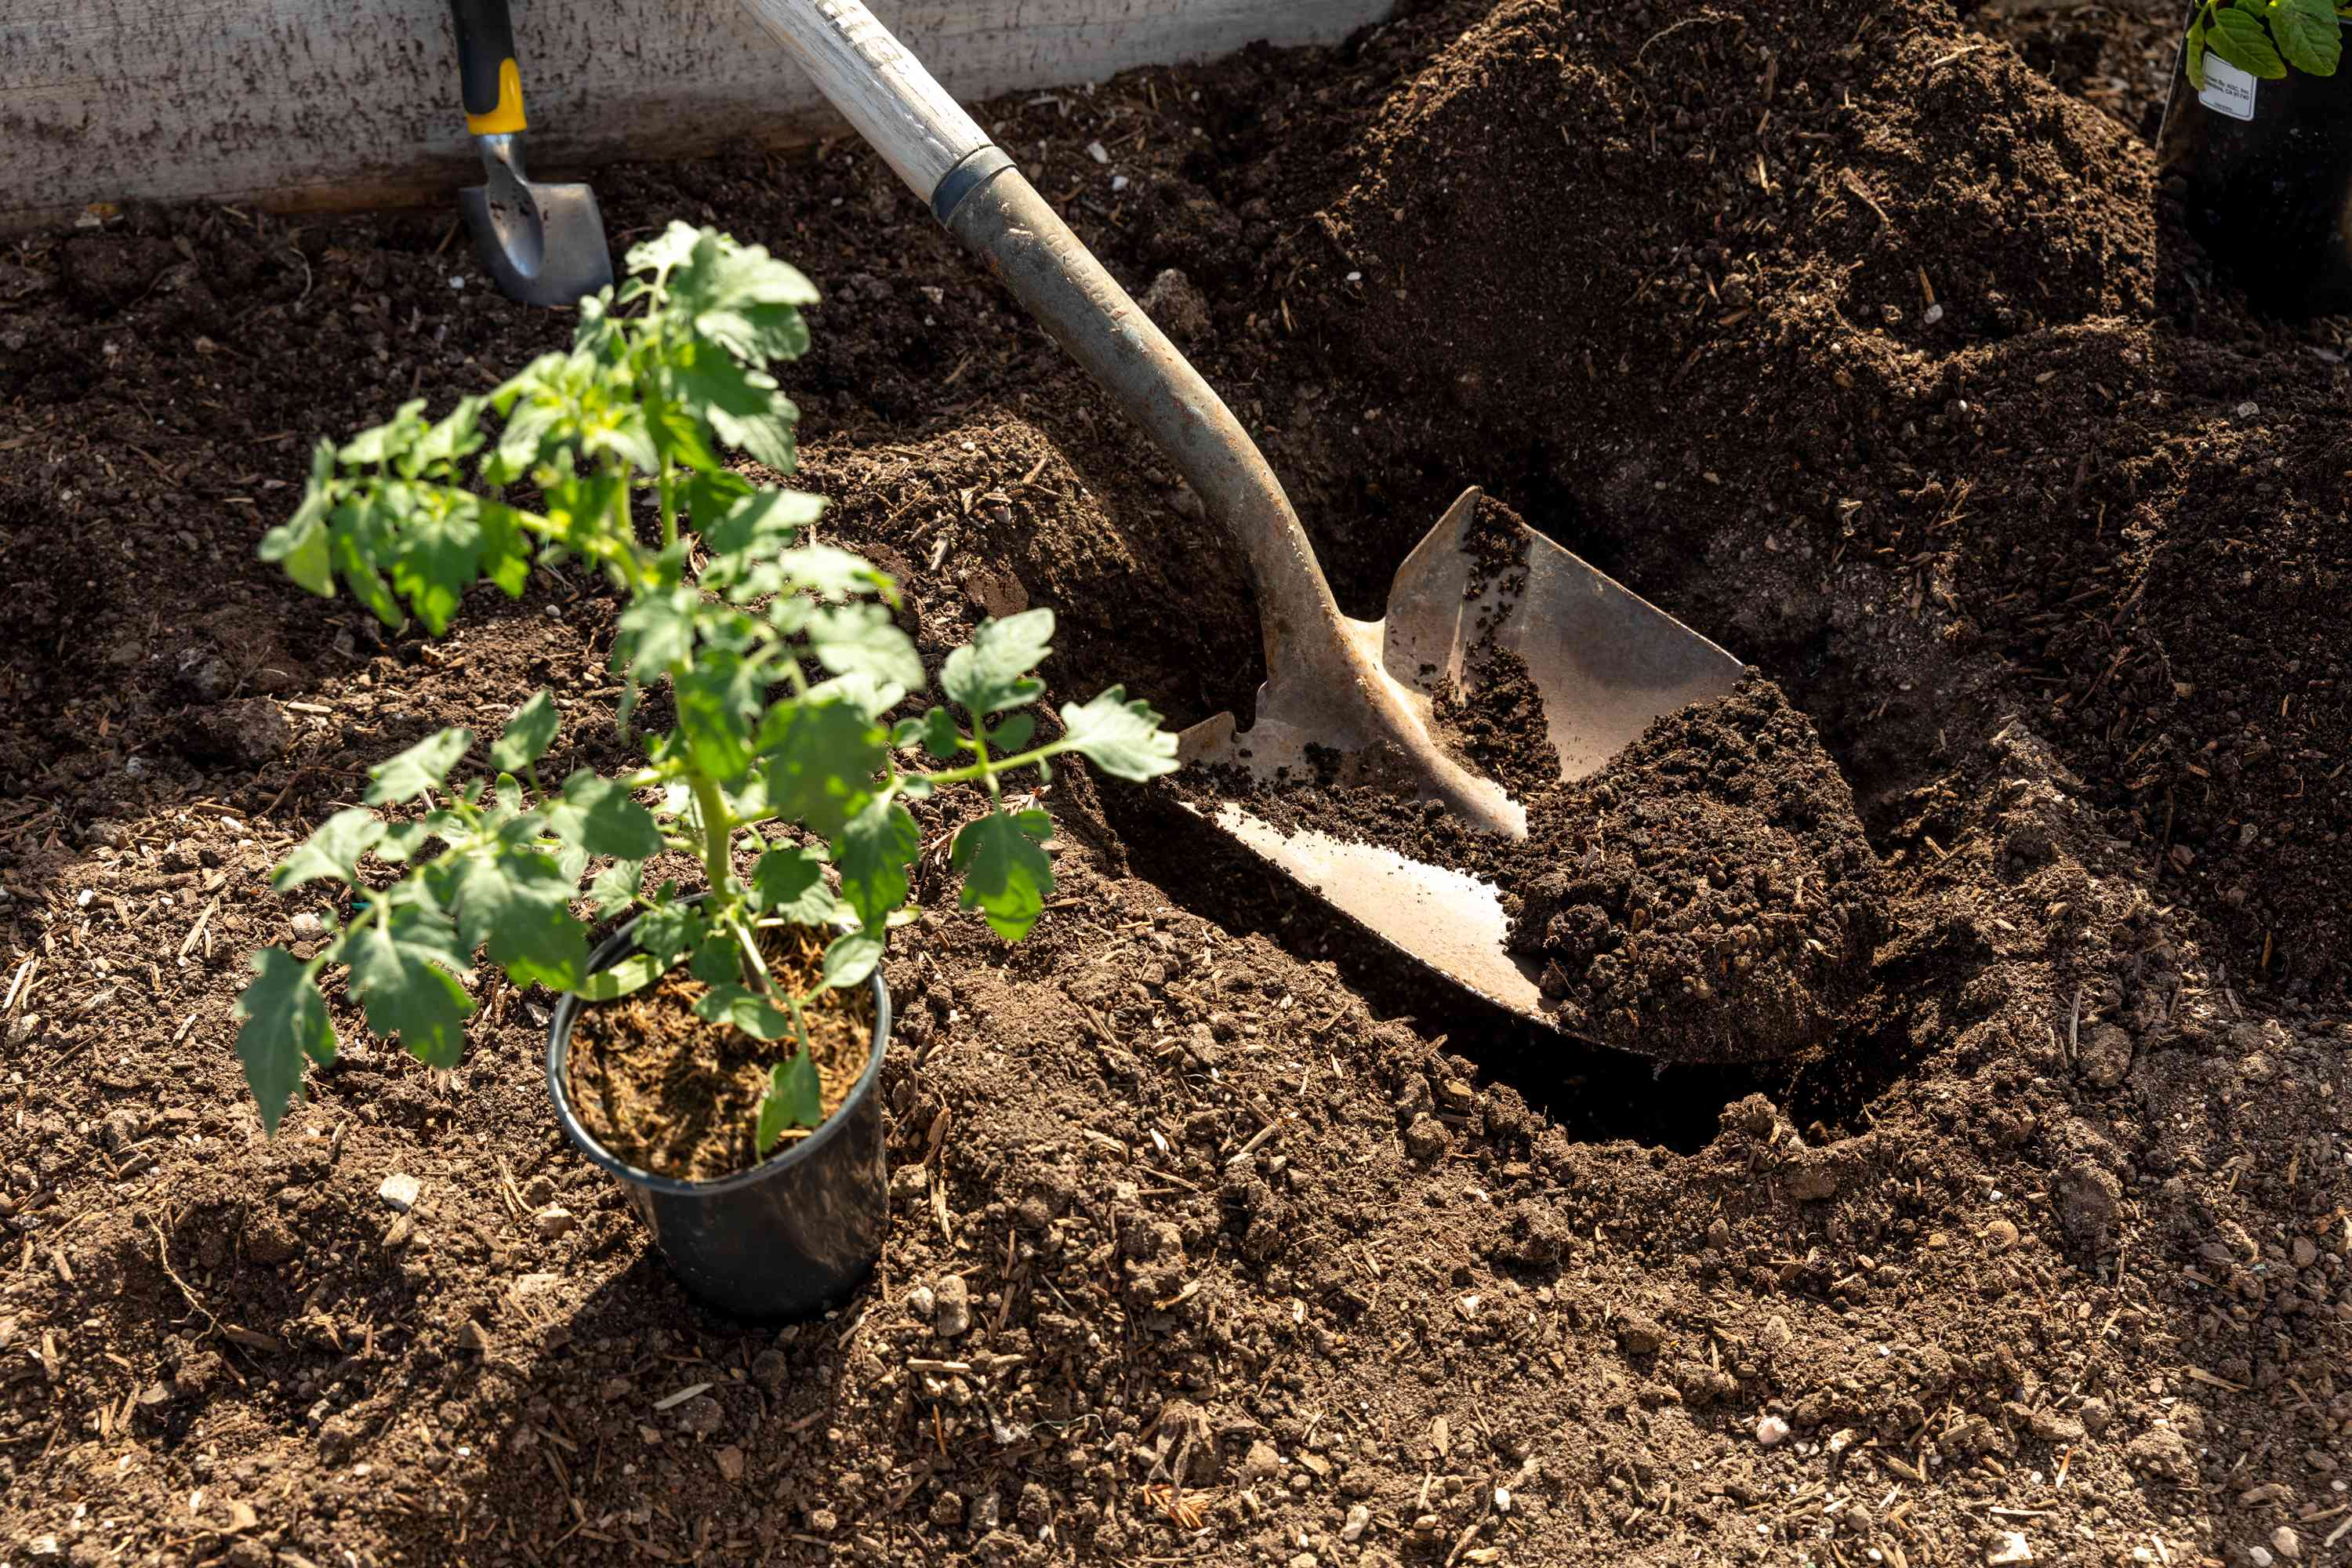 digging a trench to plant tomatoes